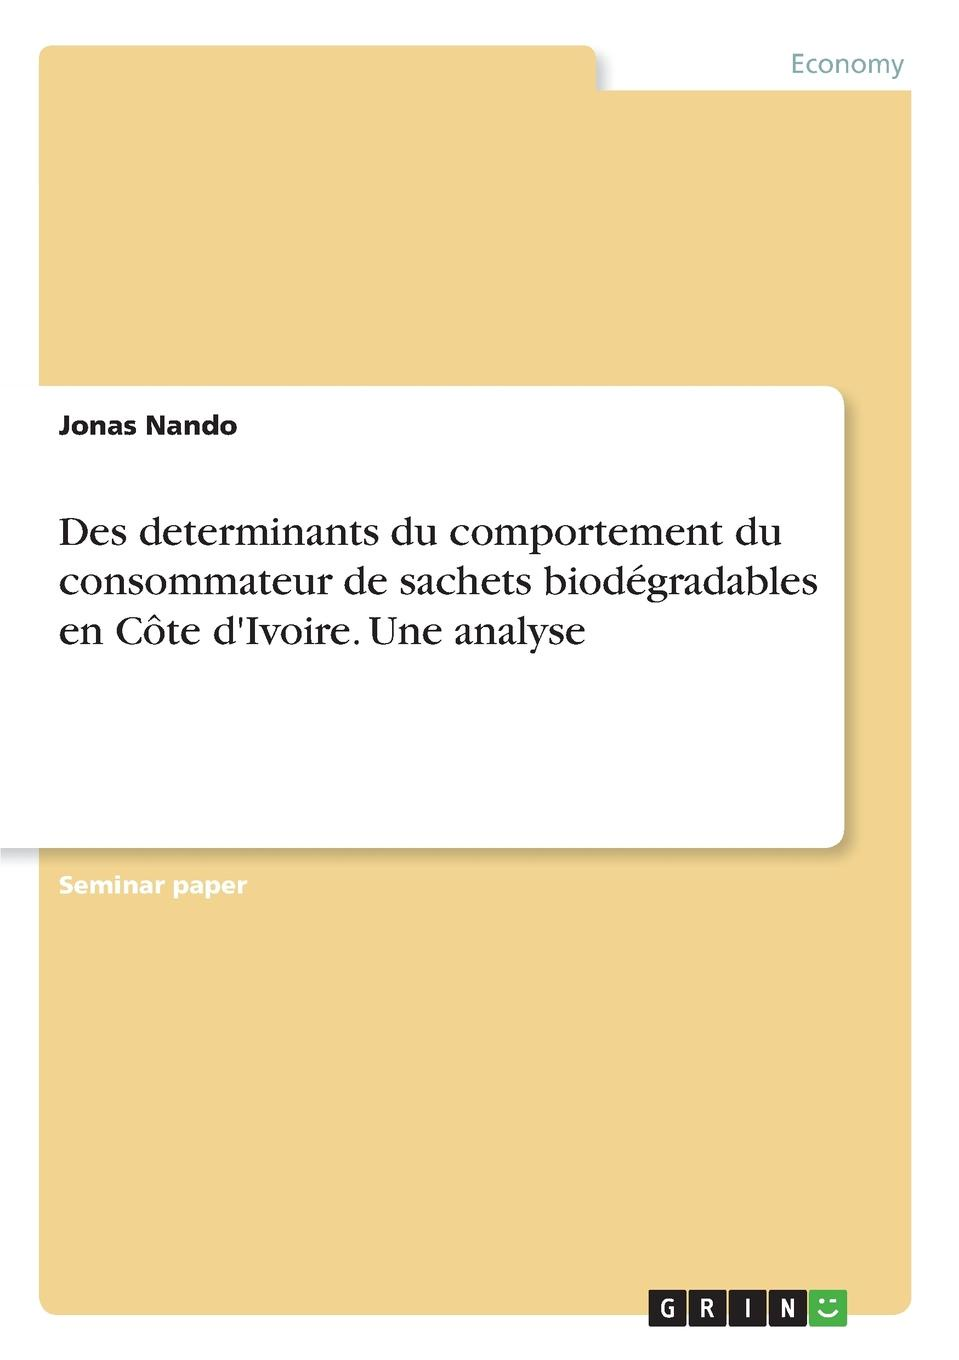 Jonas Nando Des determinants du comportement du consommateur de sachets biodegradables en Cote d.Ivoire. Une analyse sully prudhomme l expression dans les beaux arts application de la psychologie a l etude de l artiste et des beaux arts prose 1883 french edition